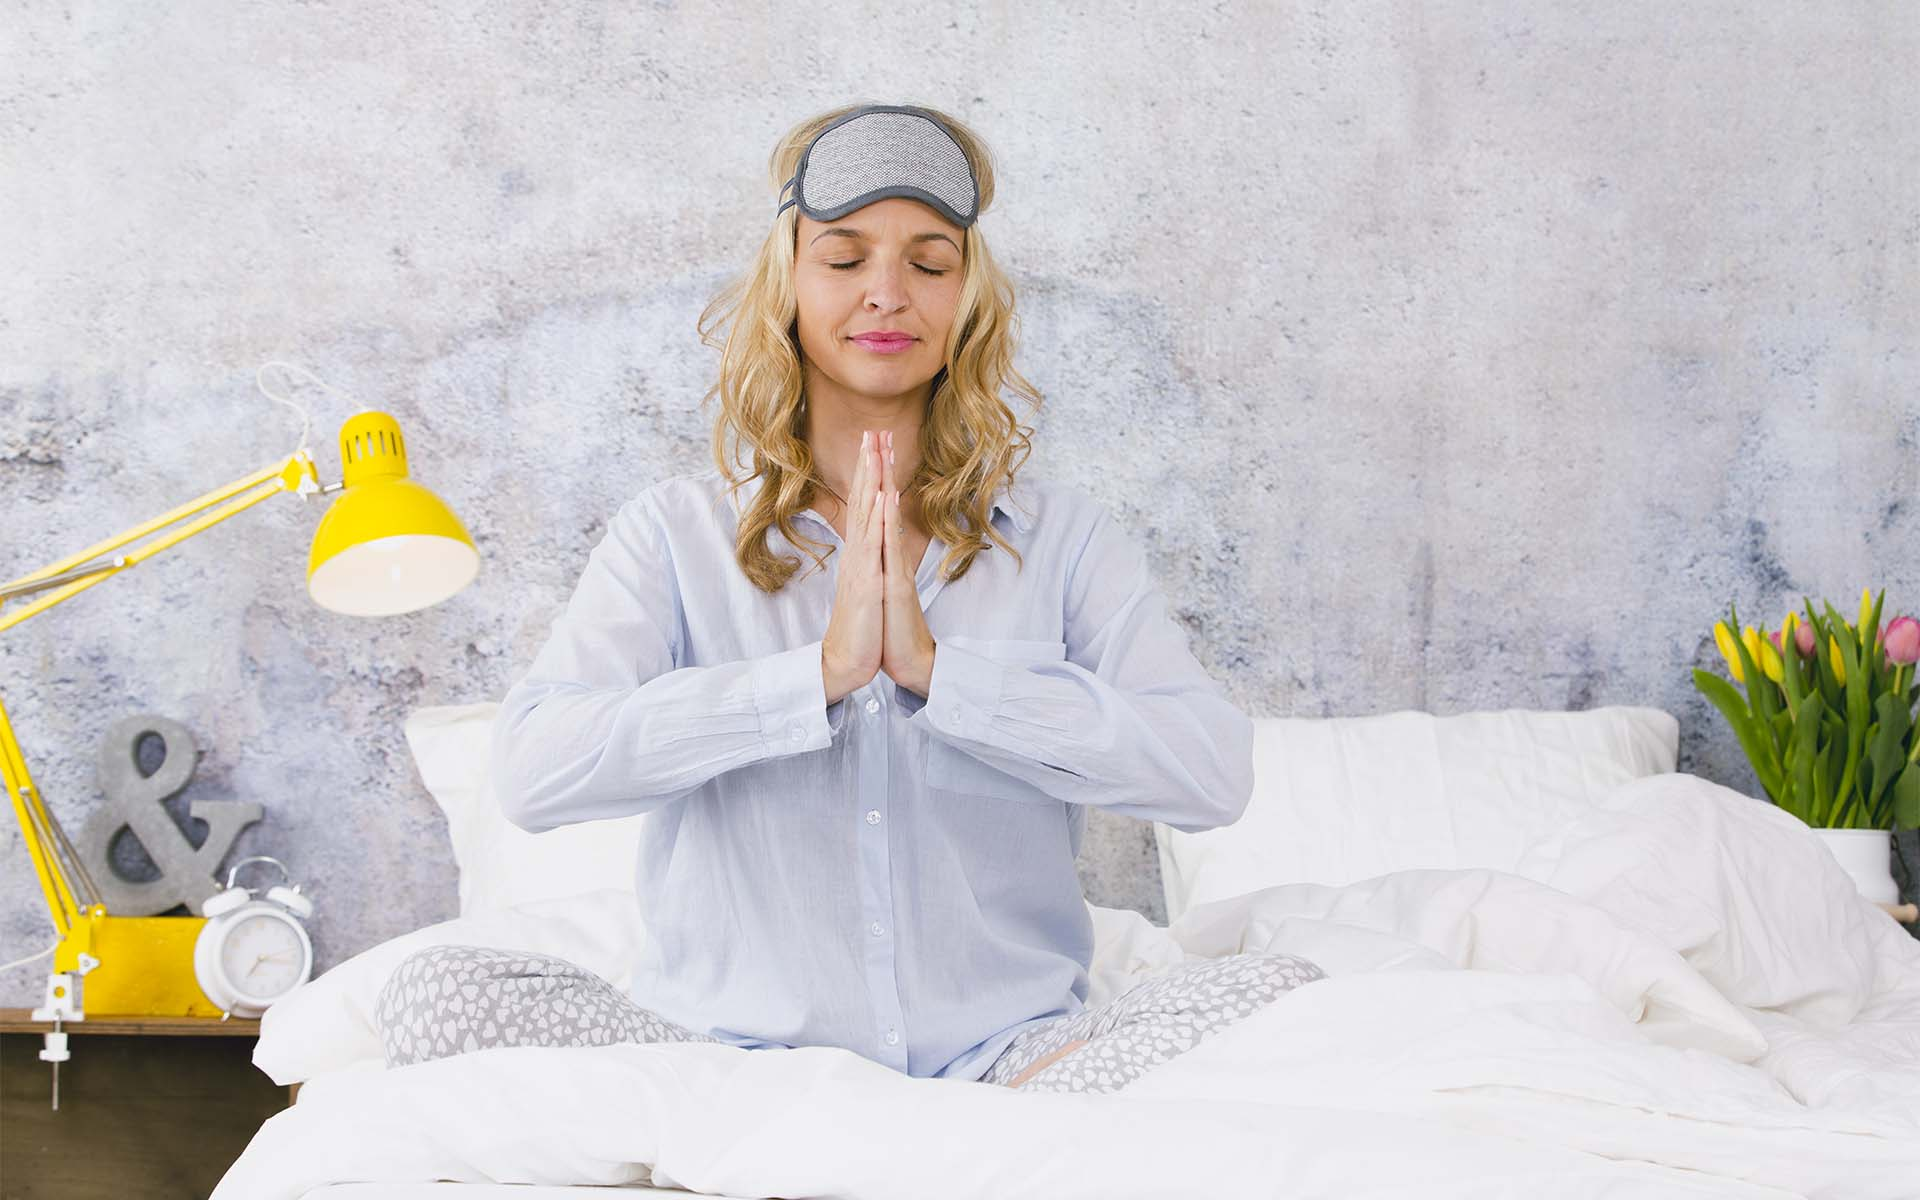 4 Yoga Stretches for a Good Night's Sleep_Blonde woman sitting in bed with hands in prayer position